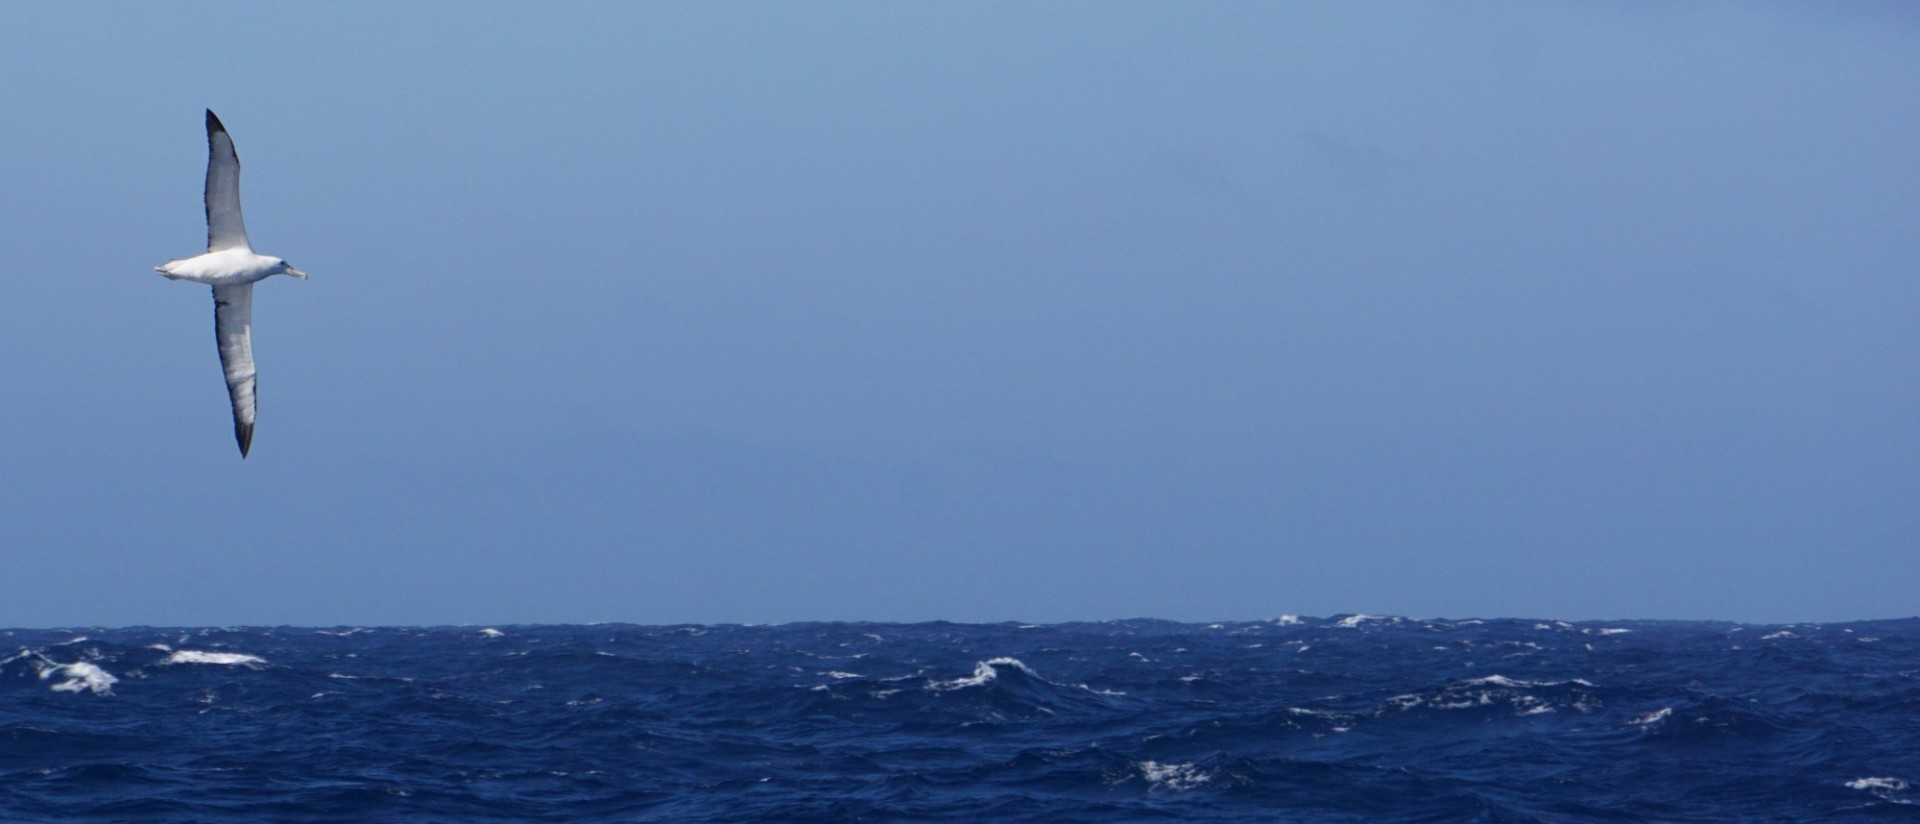 Albatross soaring in the Sub Antarctic Pacific Ocean